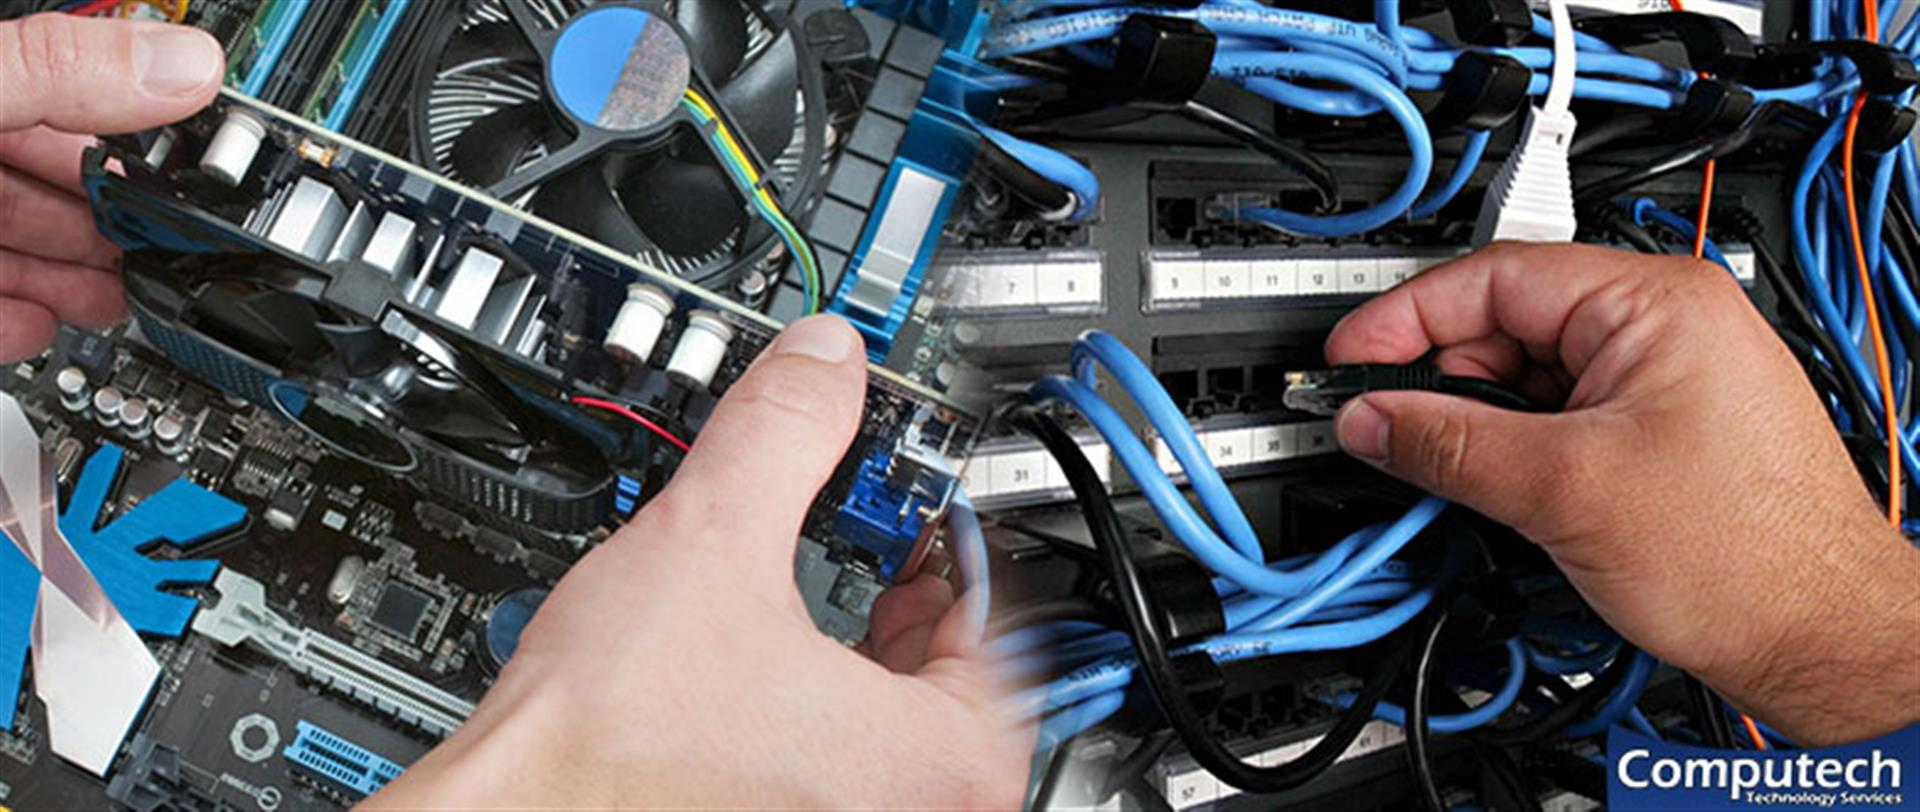 Etowah Tennessee On Site Computer PC & Printer Repairs, Networking, Voice & Data Cabling Services